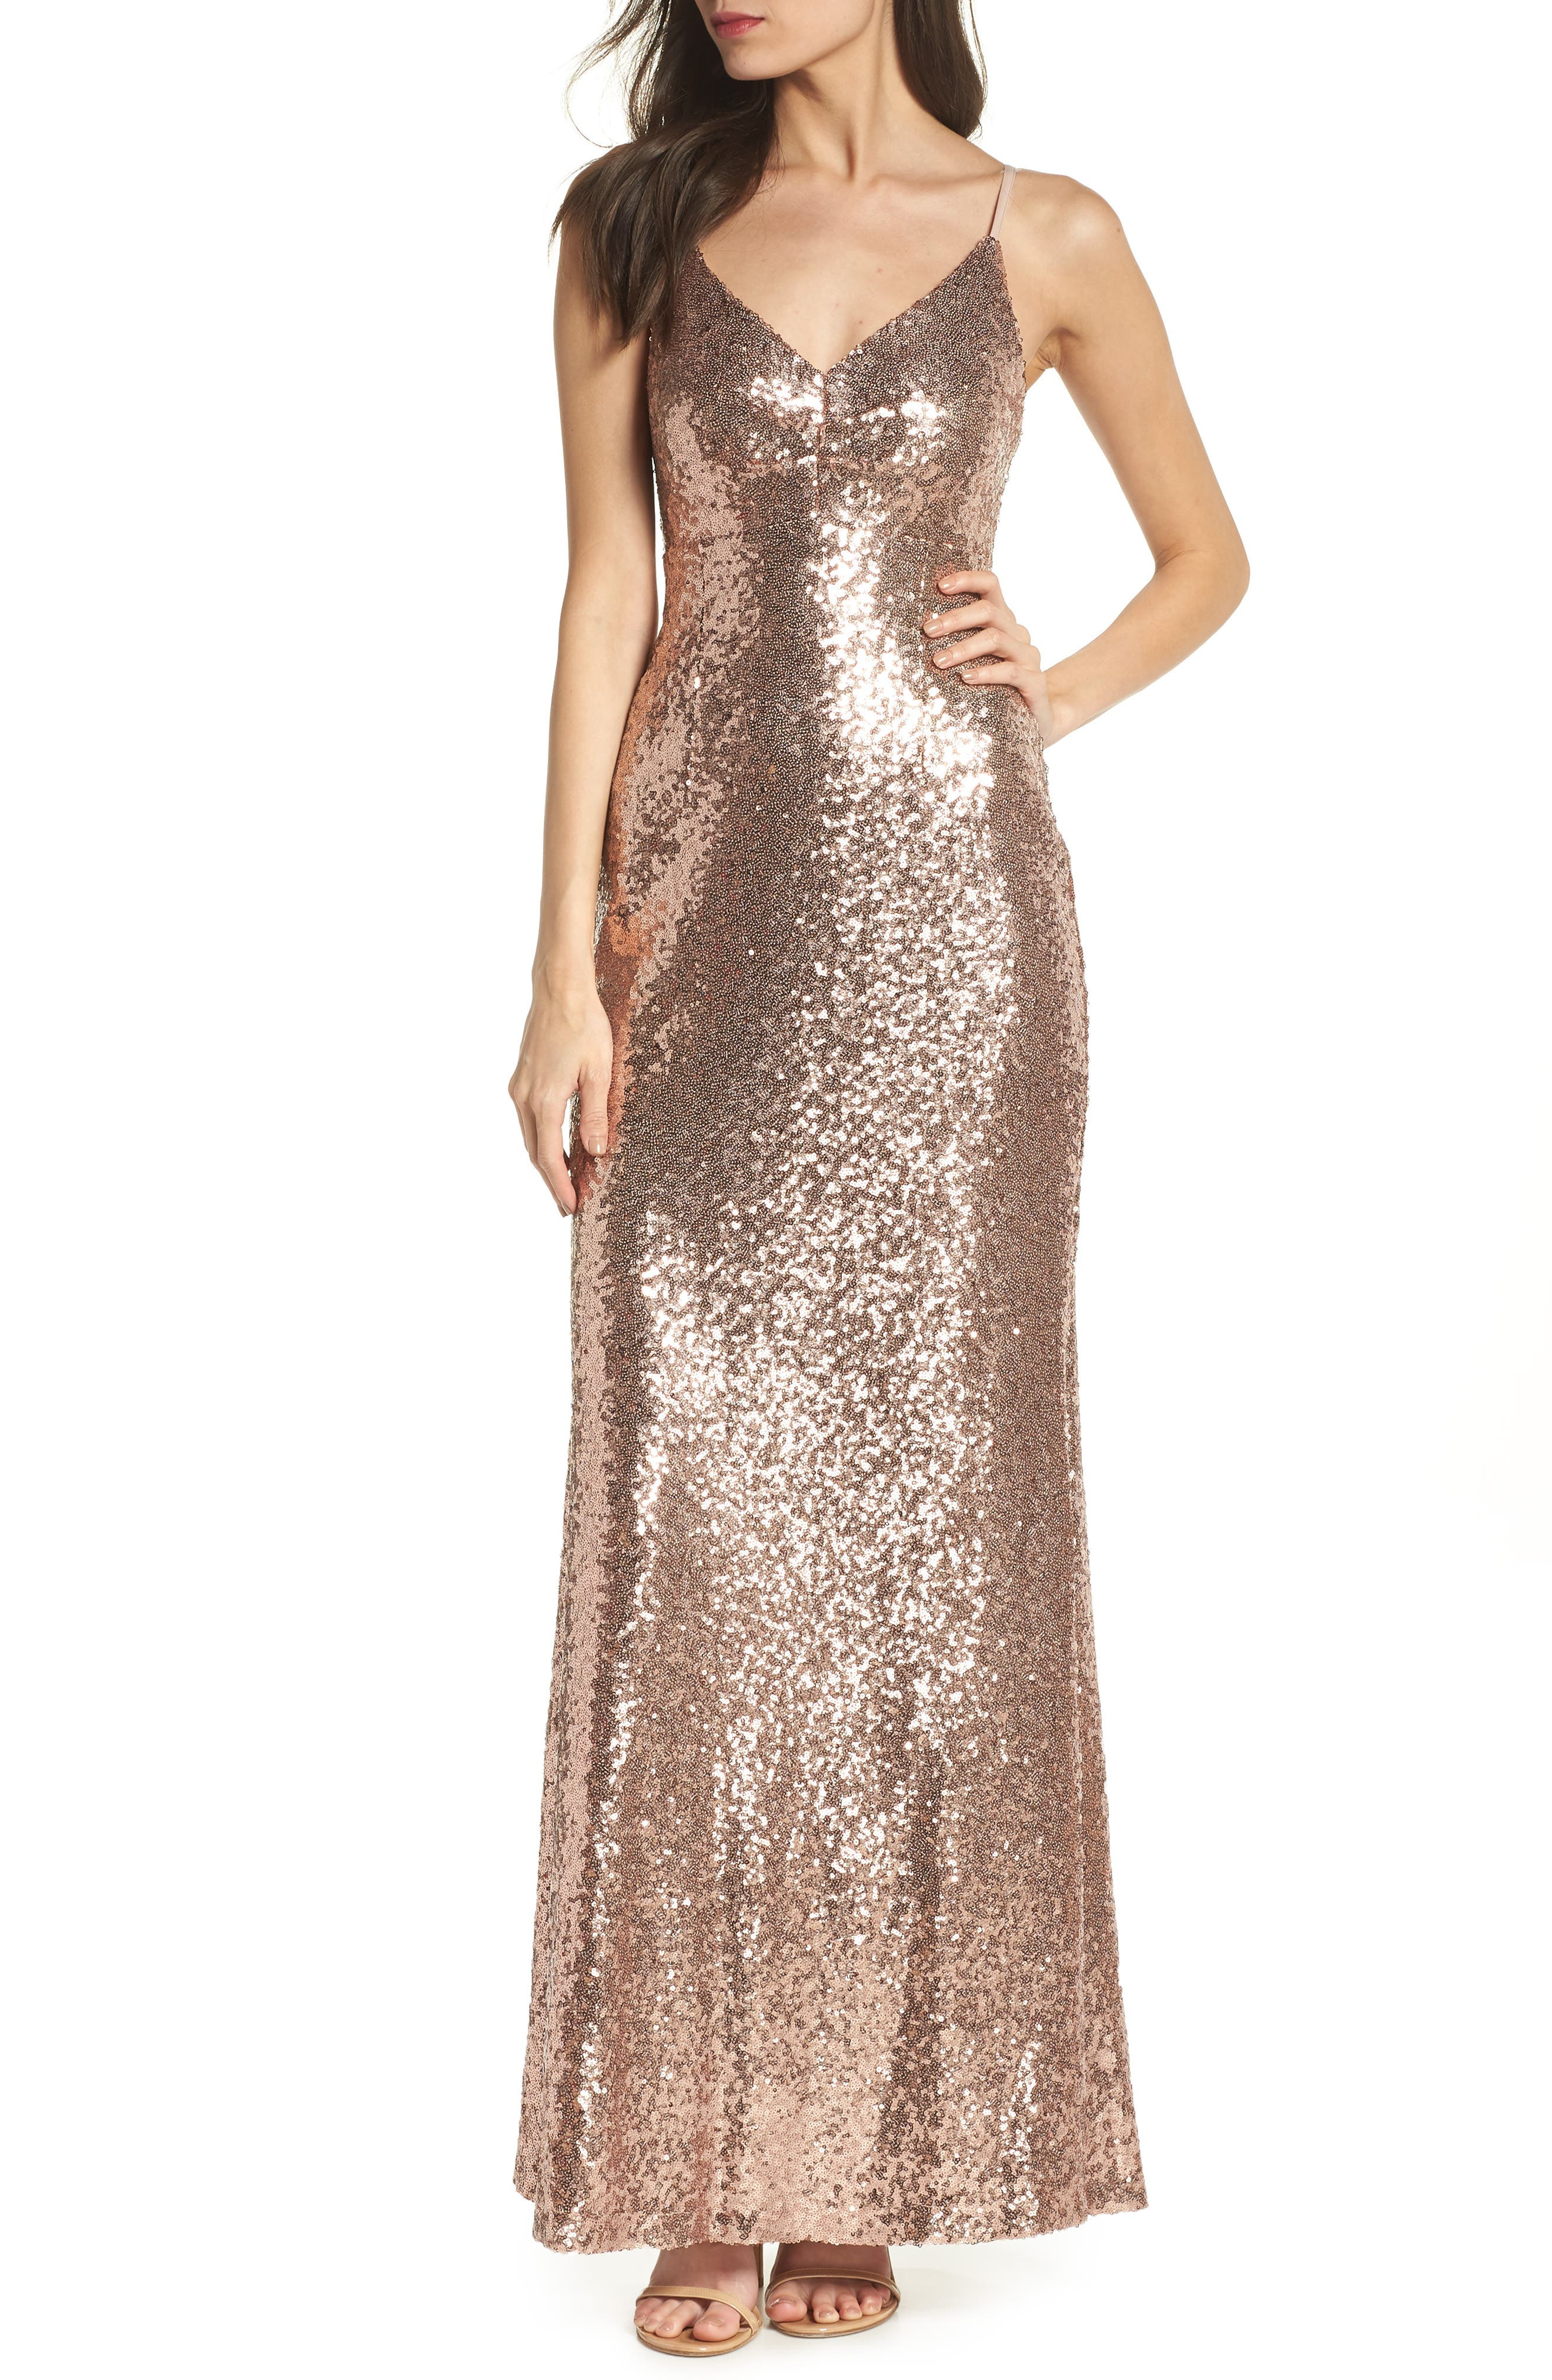 Morgan & Co. Keyhole Back Sequin Gown - Pink